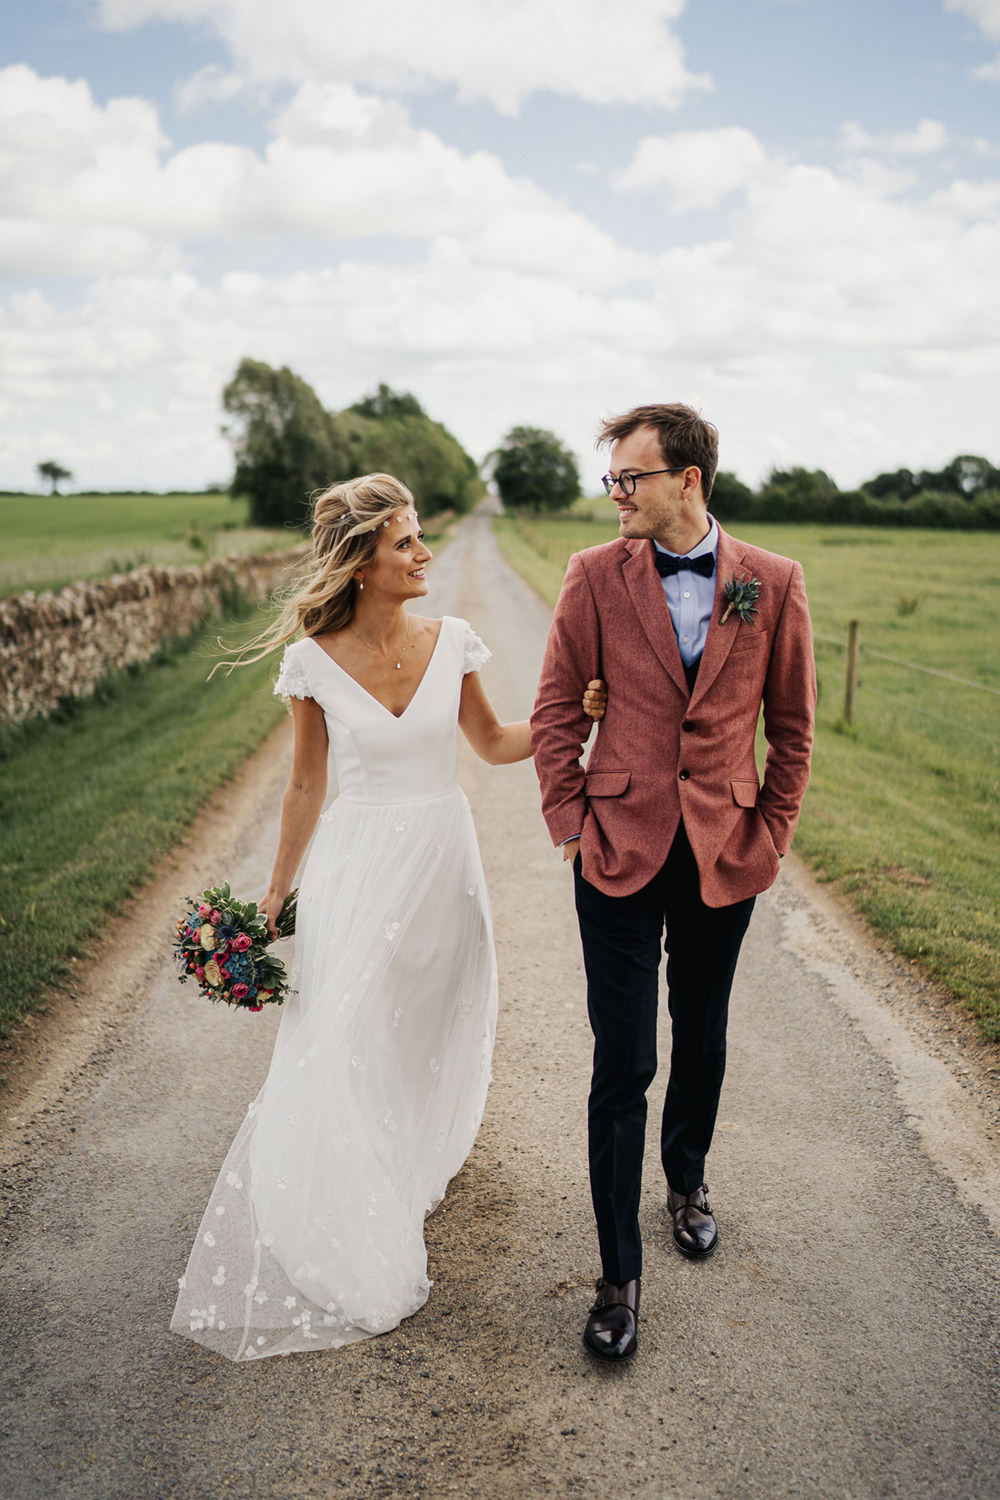 Groom Suit Pink Jacket Blue Shirt Bow Tie Waistcoat Boho Country Wedding Kit Myers Photography